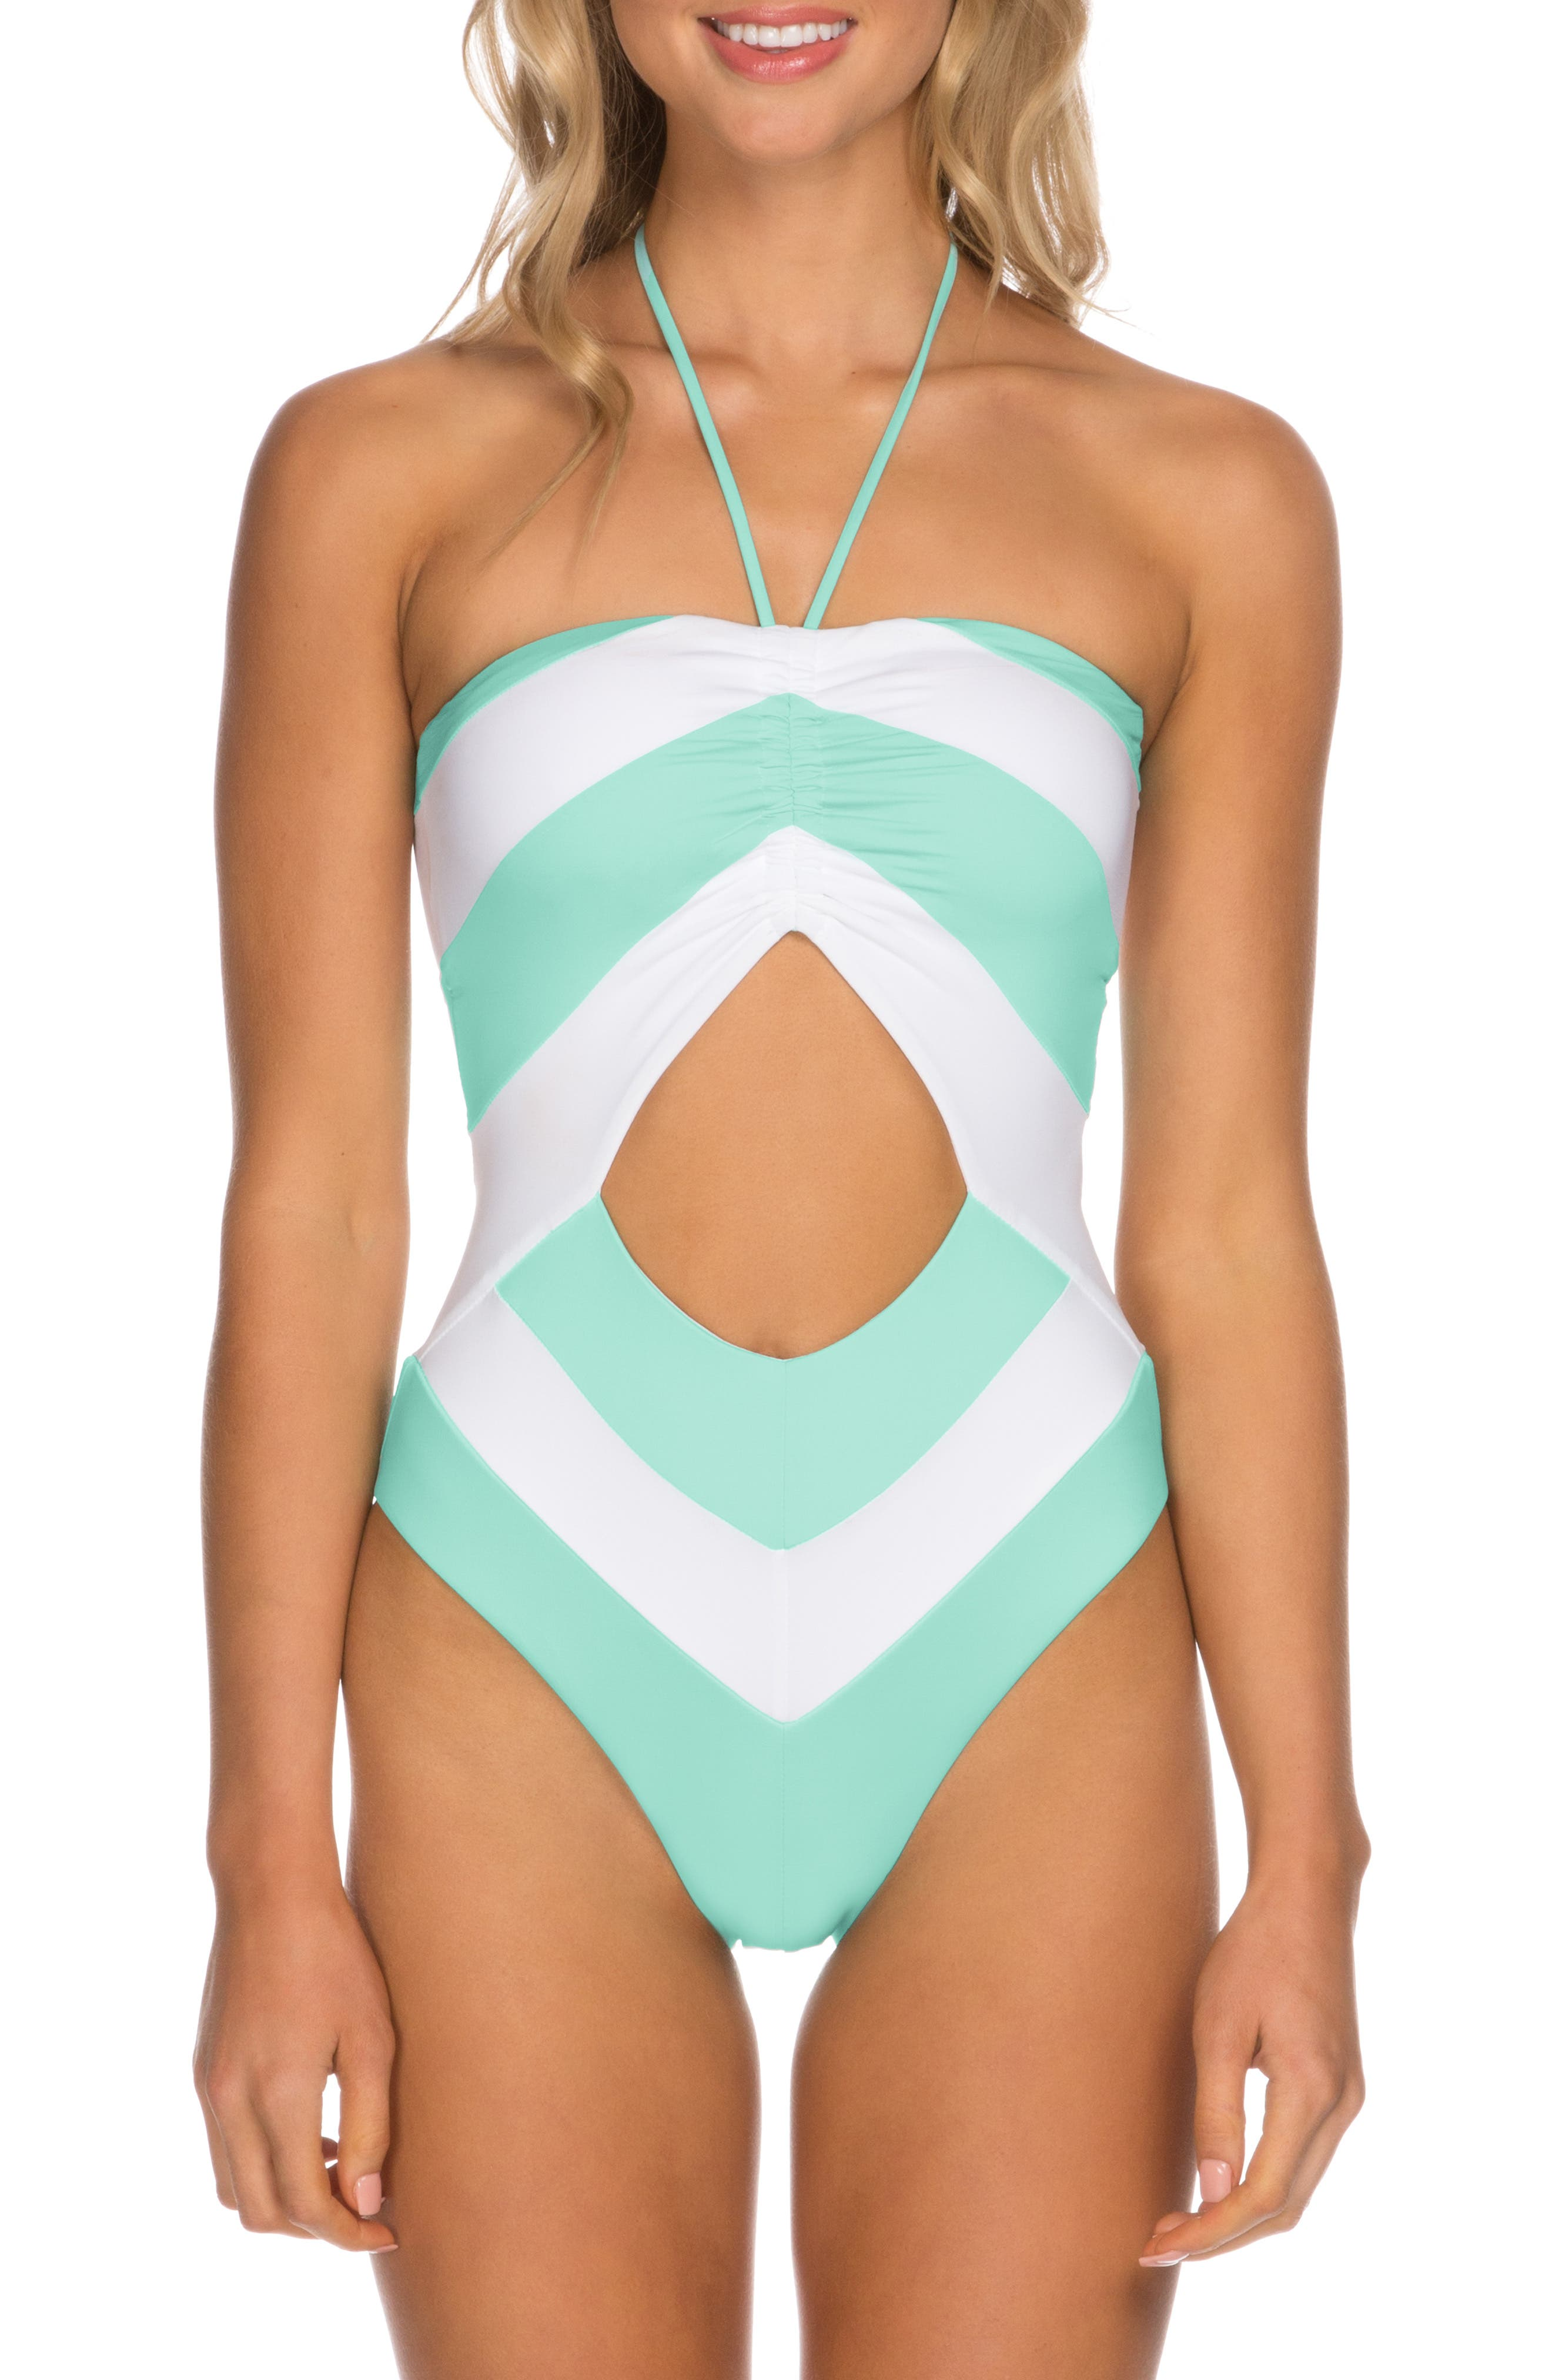 ISABELLA ROSE Block Party One-Piece Swimsuit, Main, color, BISCAYNE BLUE